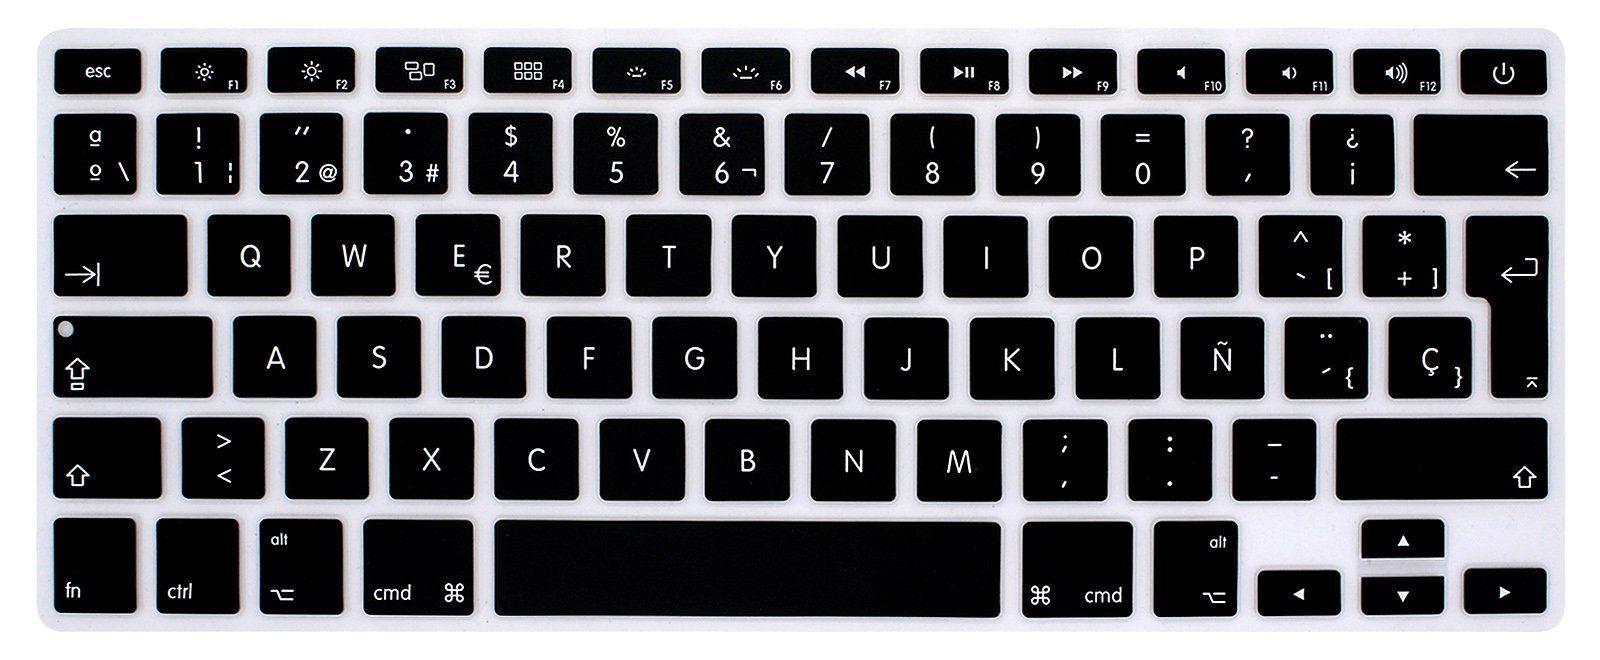 HRH Spanish Silicone Keyboard Cover Skin for MacBook Air 13,MacBook Pro 13/15/17 (with or w/Out Retina Display, 2015 or Older Version)&Older iMac EU Layout Keyboard Protector-Black